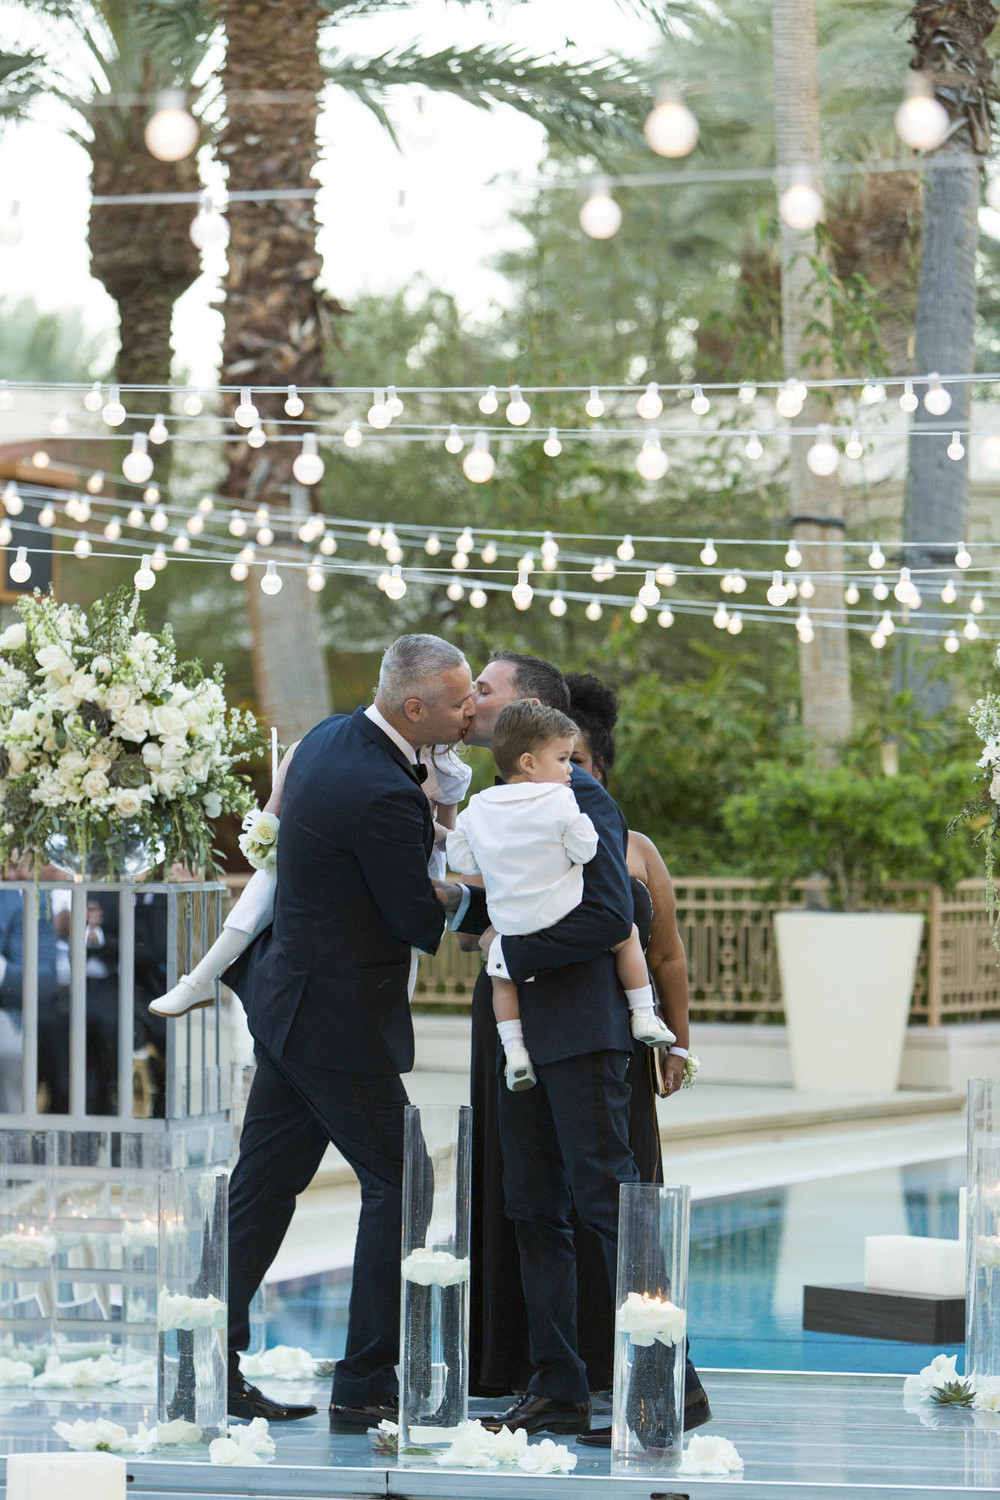 The first kiss.  Gay Wedding at Red Rock Resort by Las Vegas Wedding Planner Andrea Eppolito.  Images by Altf Photography.  Florals and decor by Destinations by Design.  Two grooms at a gay wedding in Las Vegas.